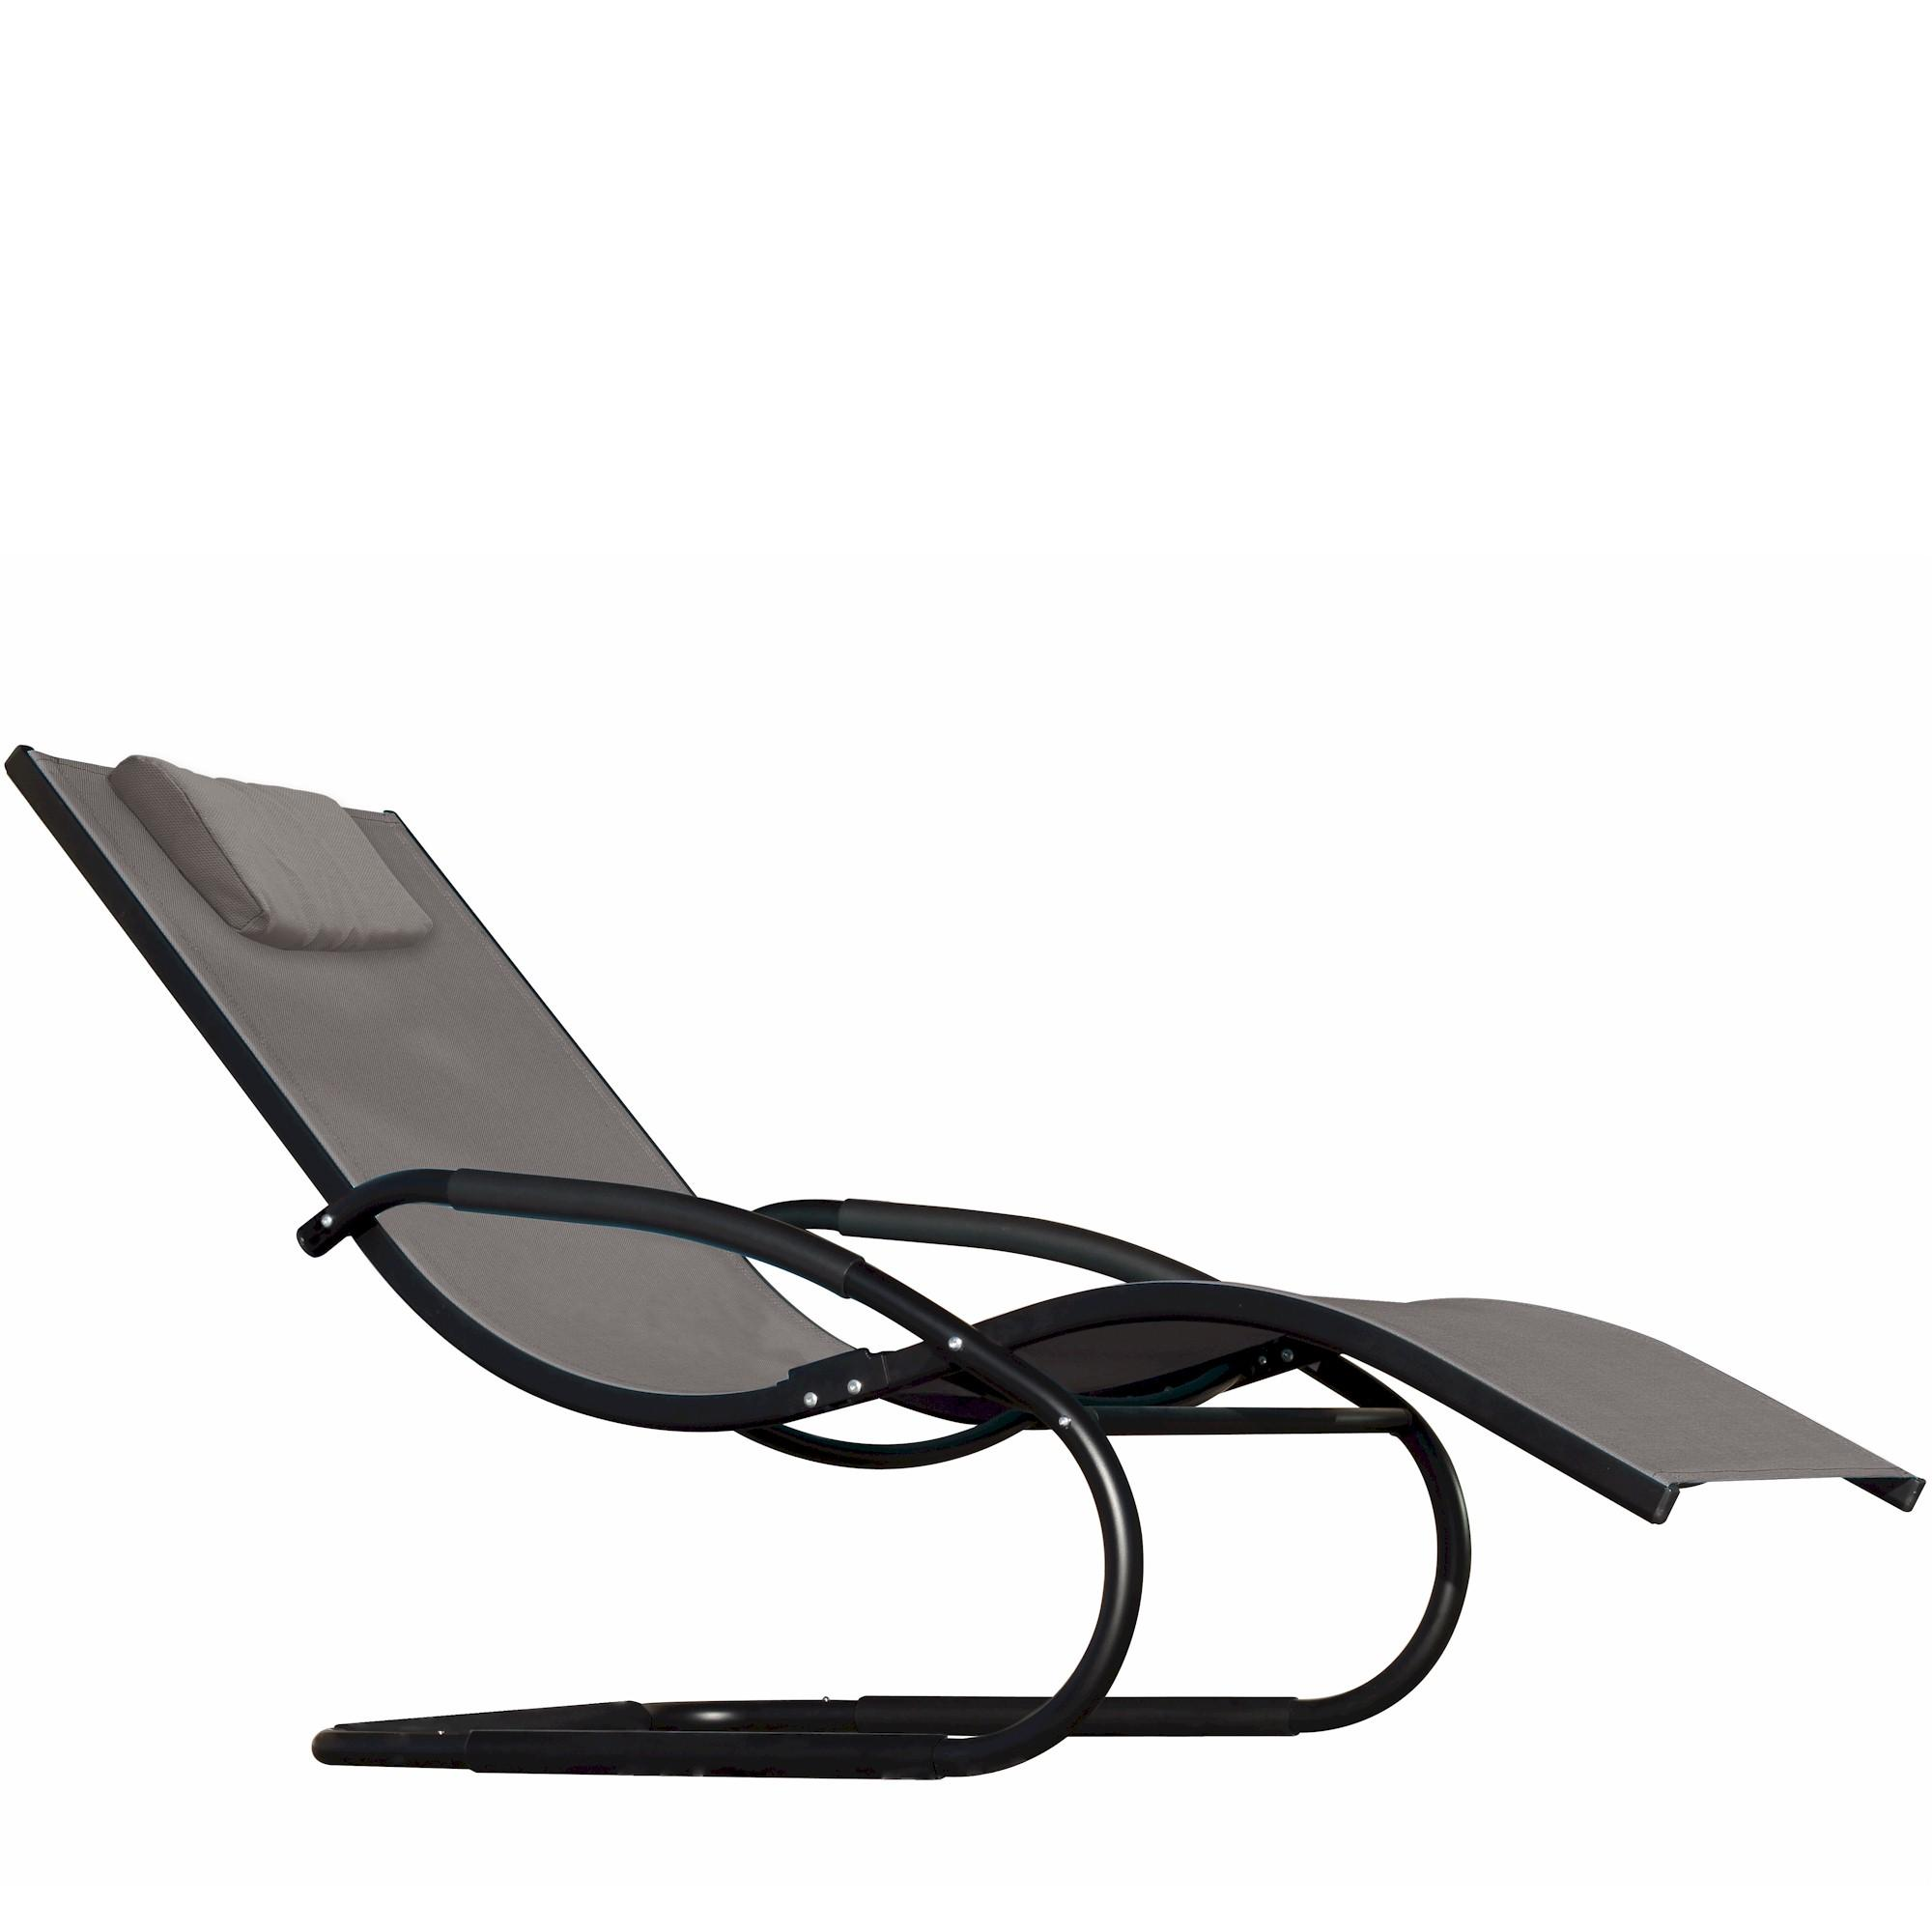 Wave chaise bed price - View Larger